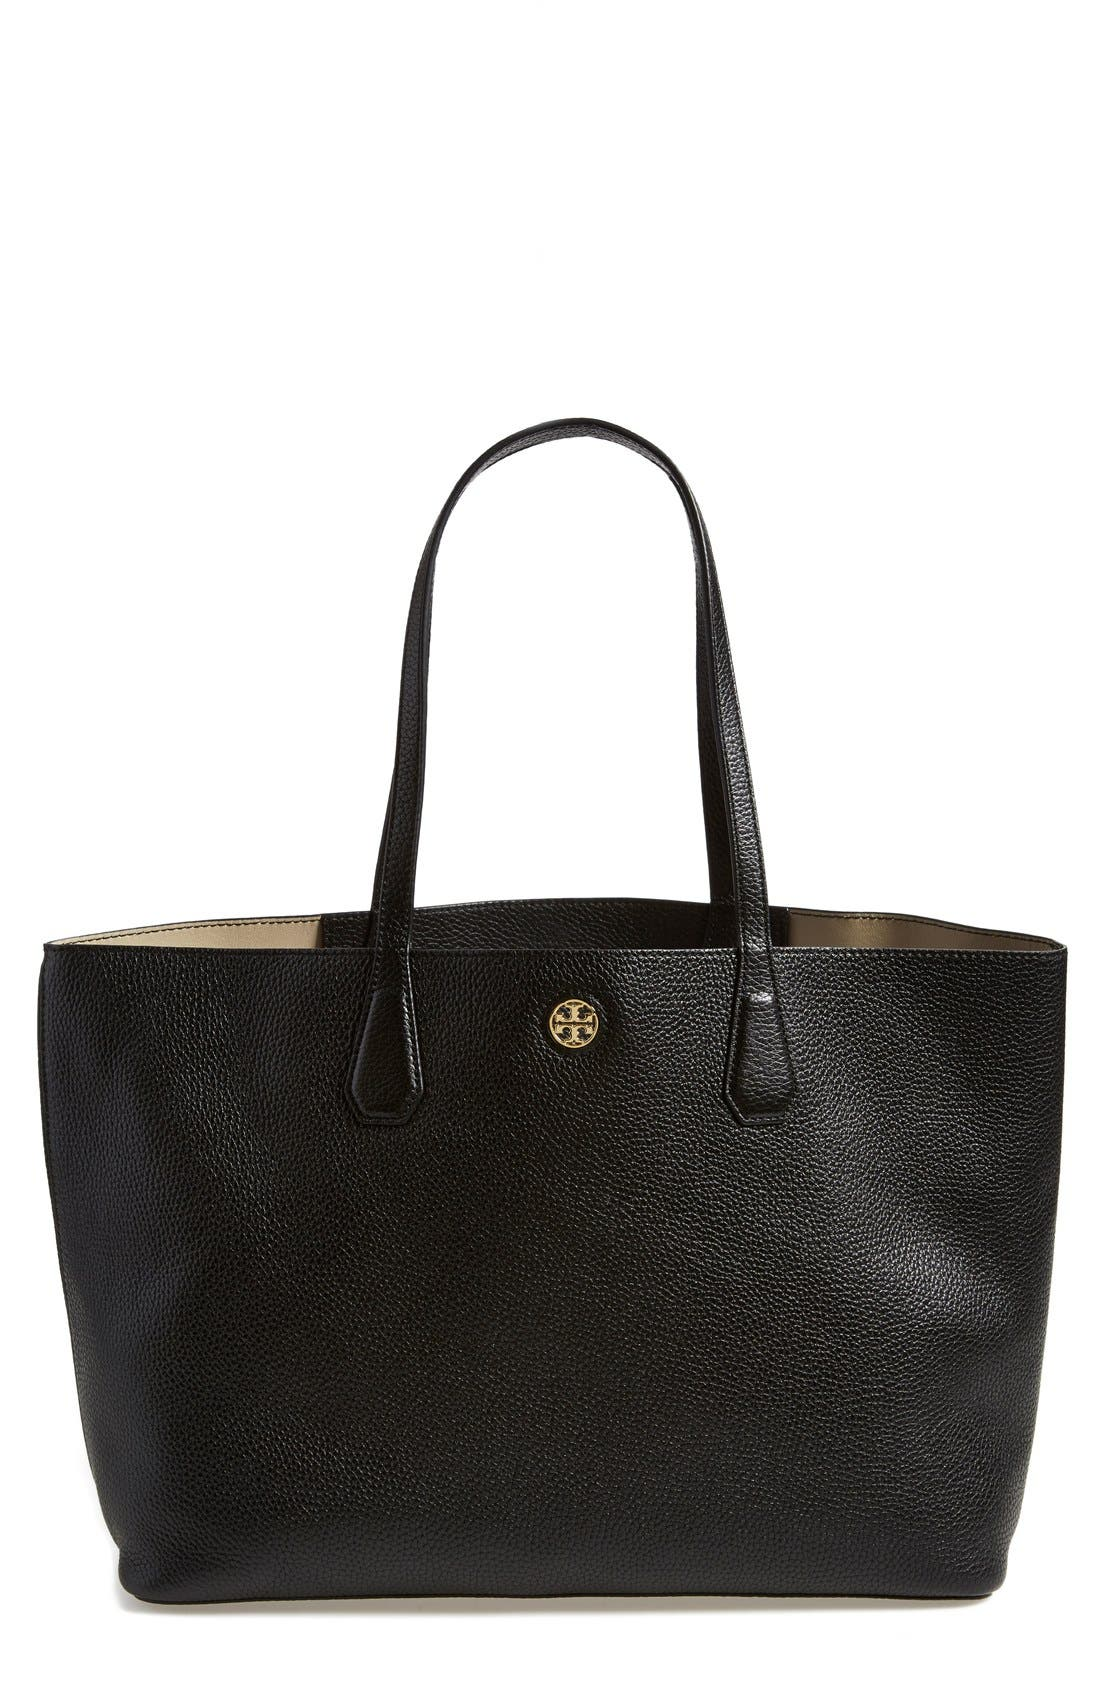 'Perry' Leather Tote,                             Main thumbnail 1, color,                             Black/ Beige